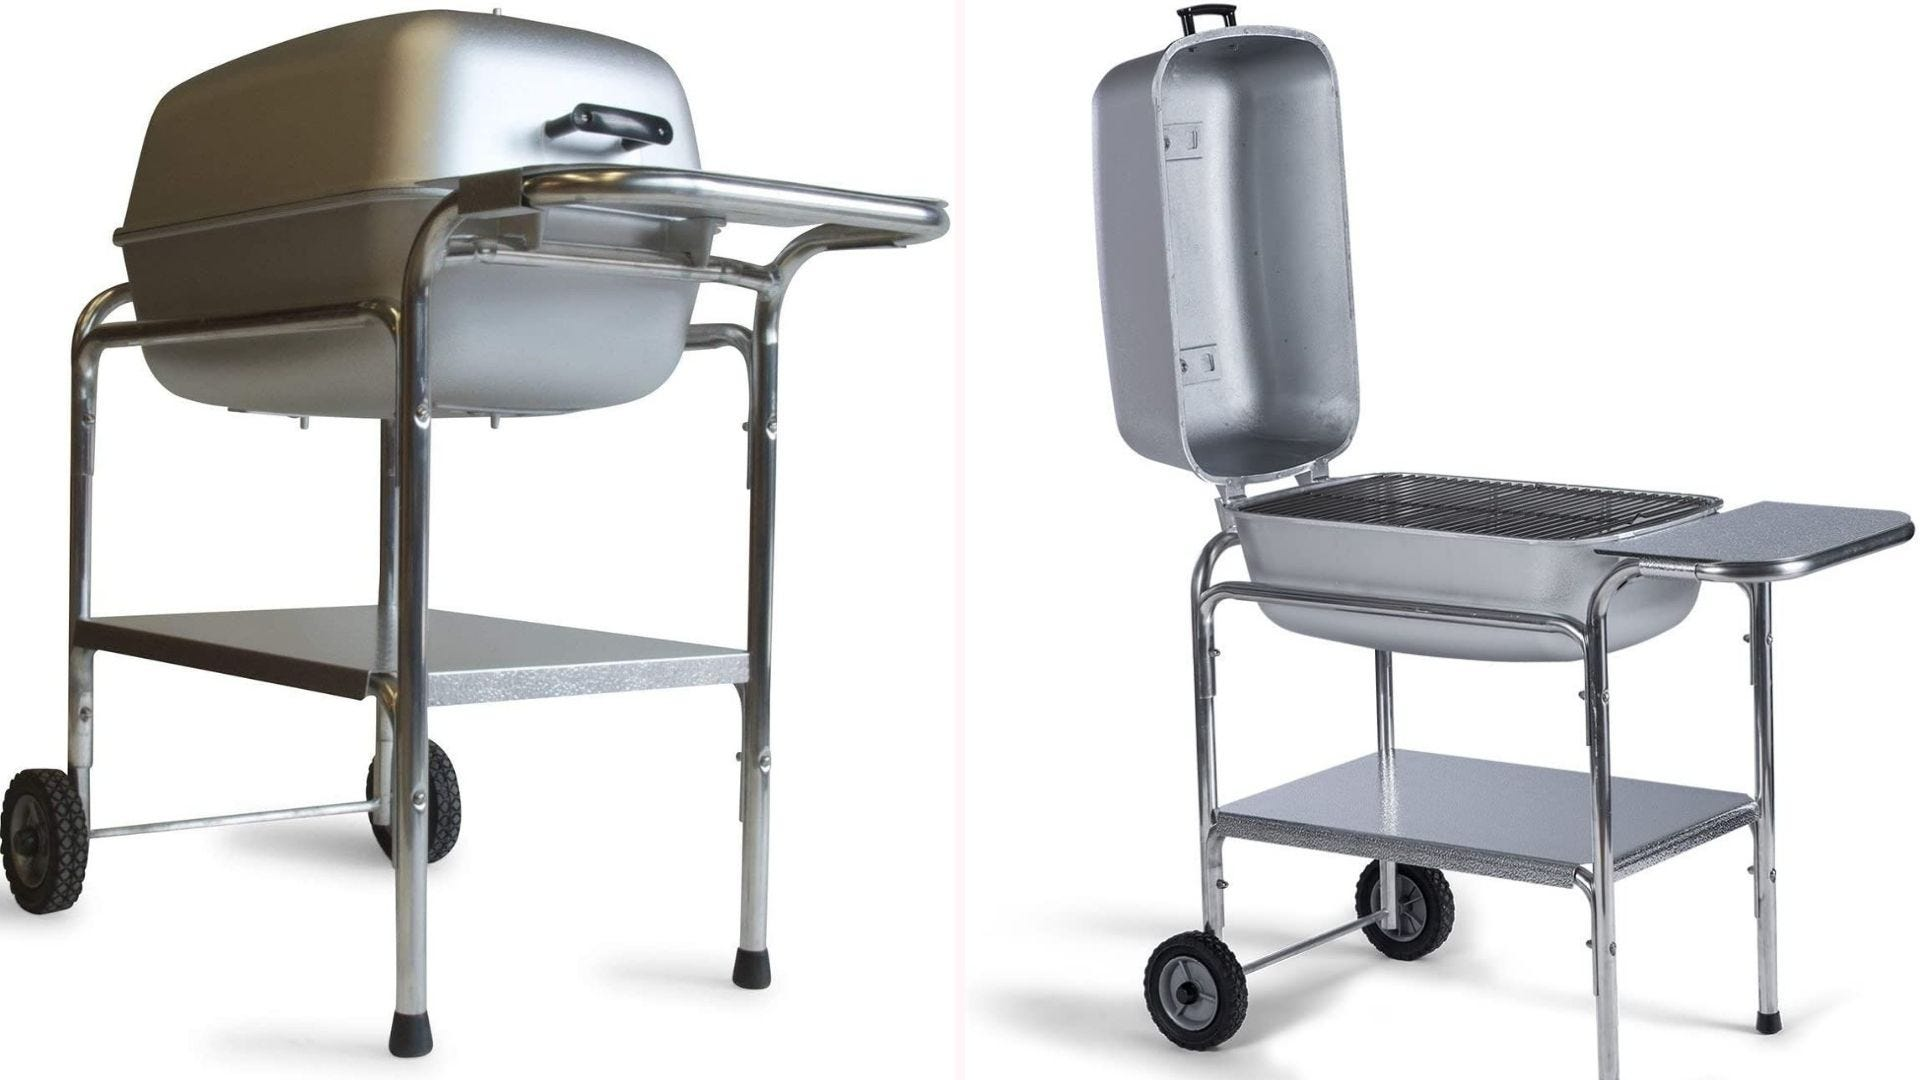 PK Grills cast aluminum charcoal grill and smoker with two wheels and 300 square inches of cooking surface